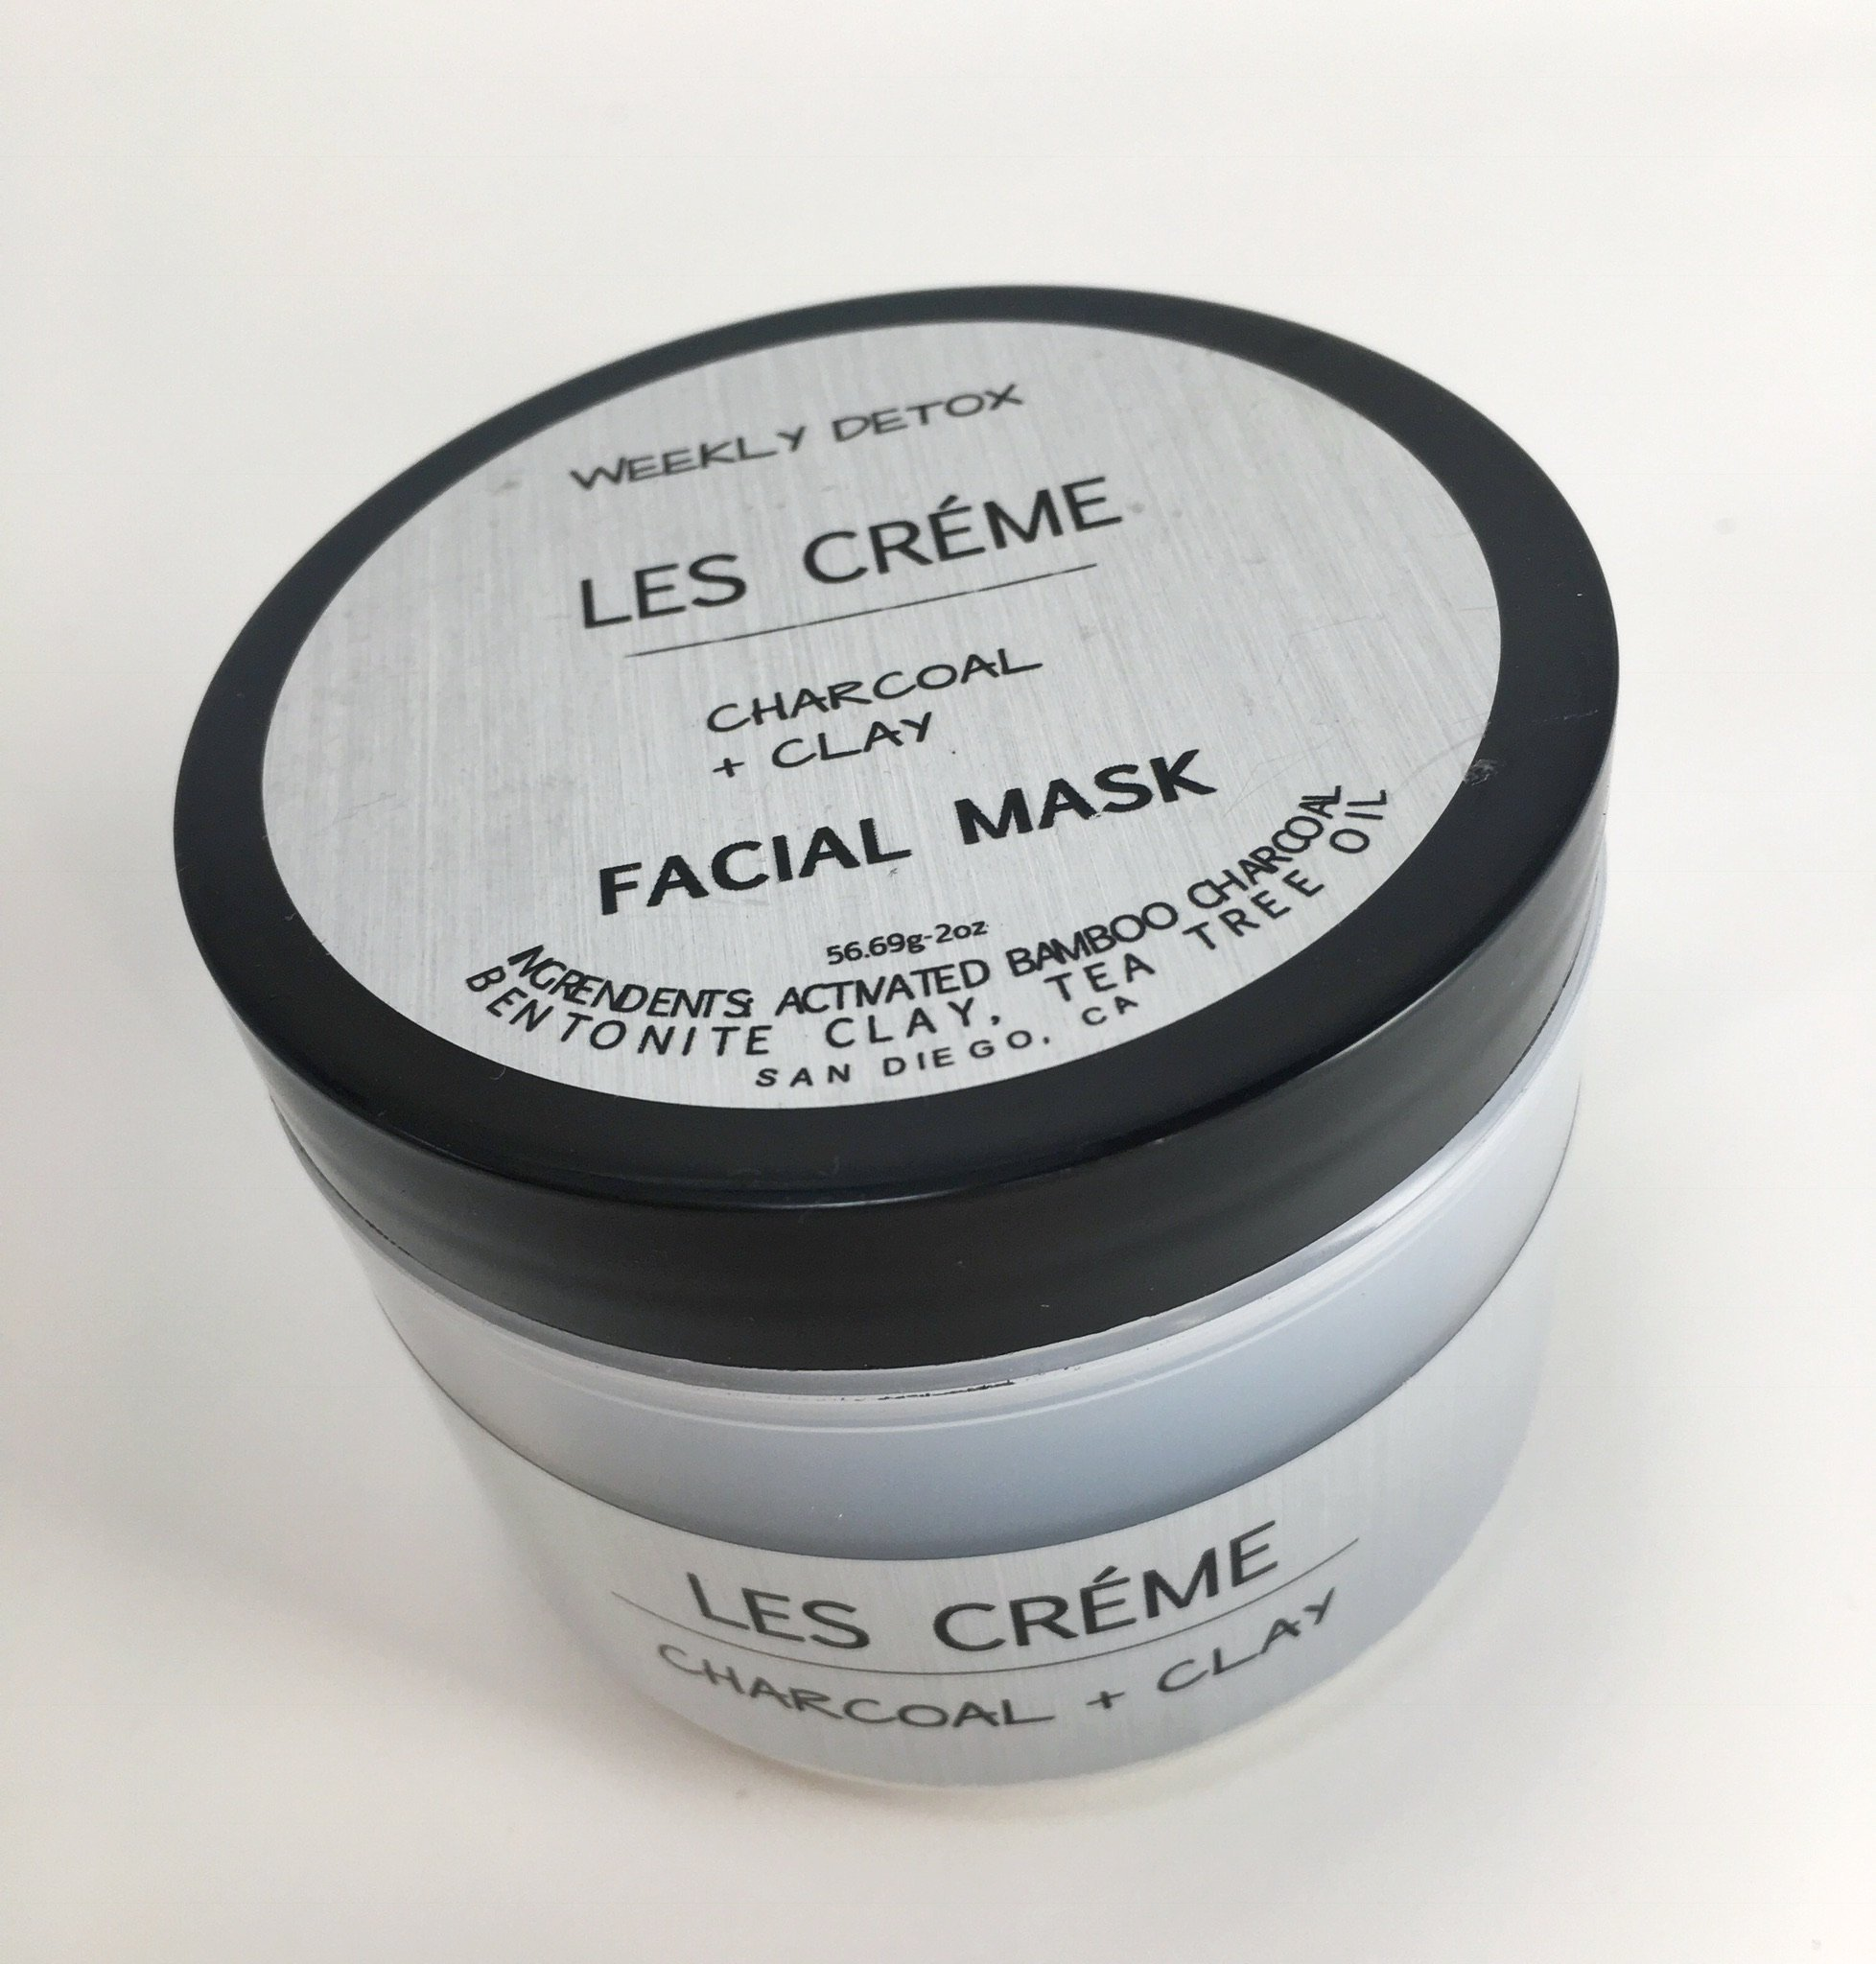 Daily Detox Charcoal Face Mask 100% Natural. With Activated Charcoal & Therapeutic Grade Essential Oils And Bentonite Clay. For Men, Women & Teens. Chemical Free. 2oz Jar